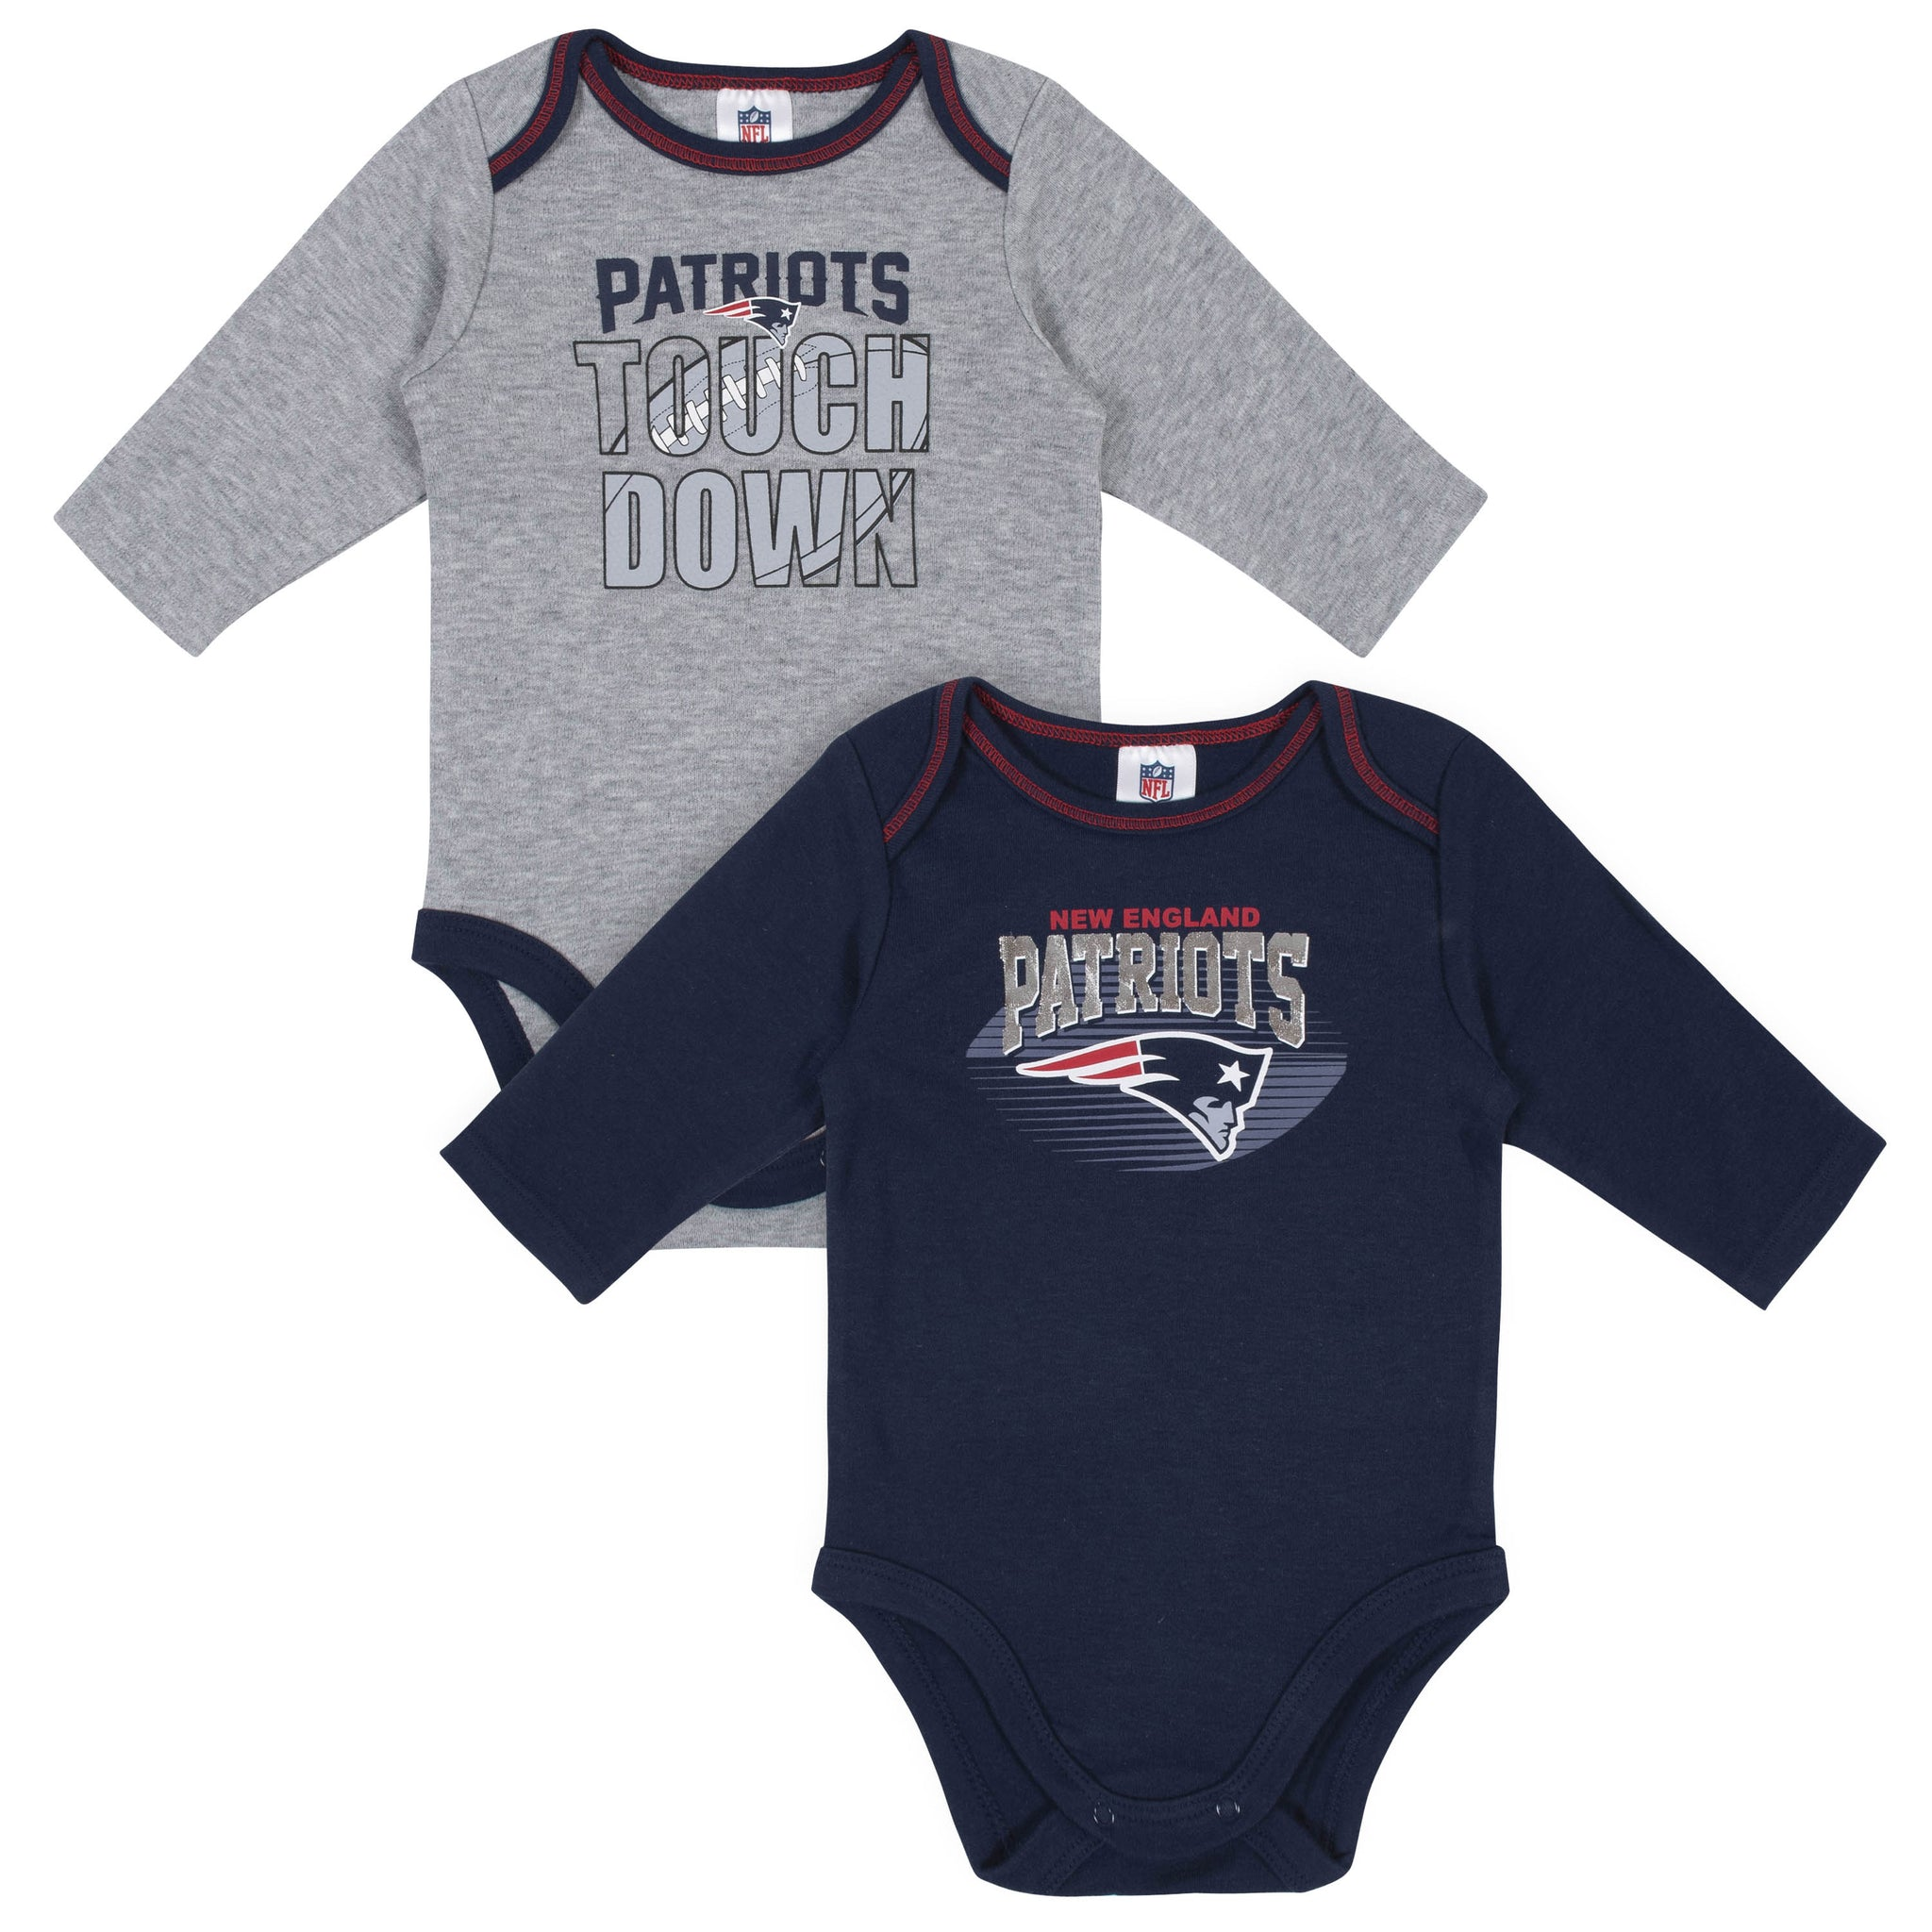 Baby Boys New England Patriots Long Sleeve Bodysuit, 2-pack -Gerber Childrenswear